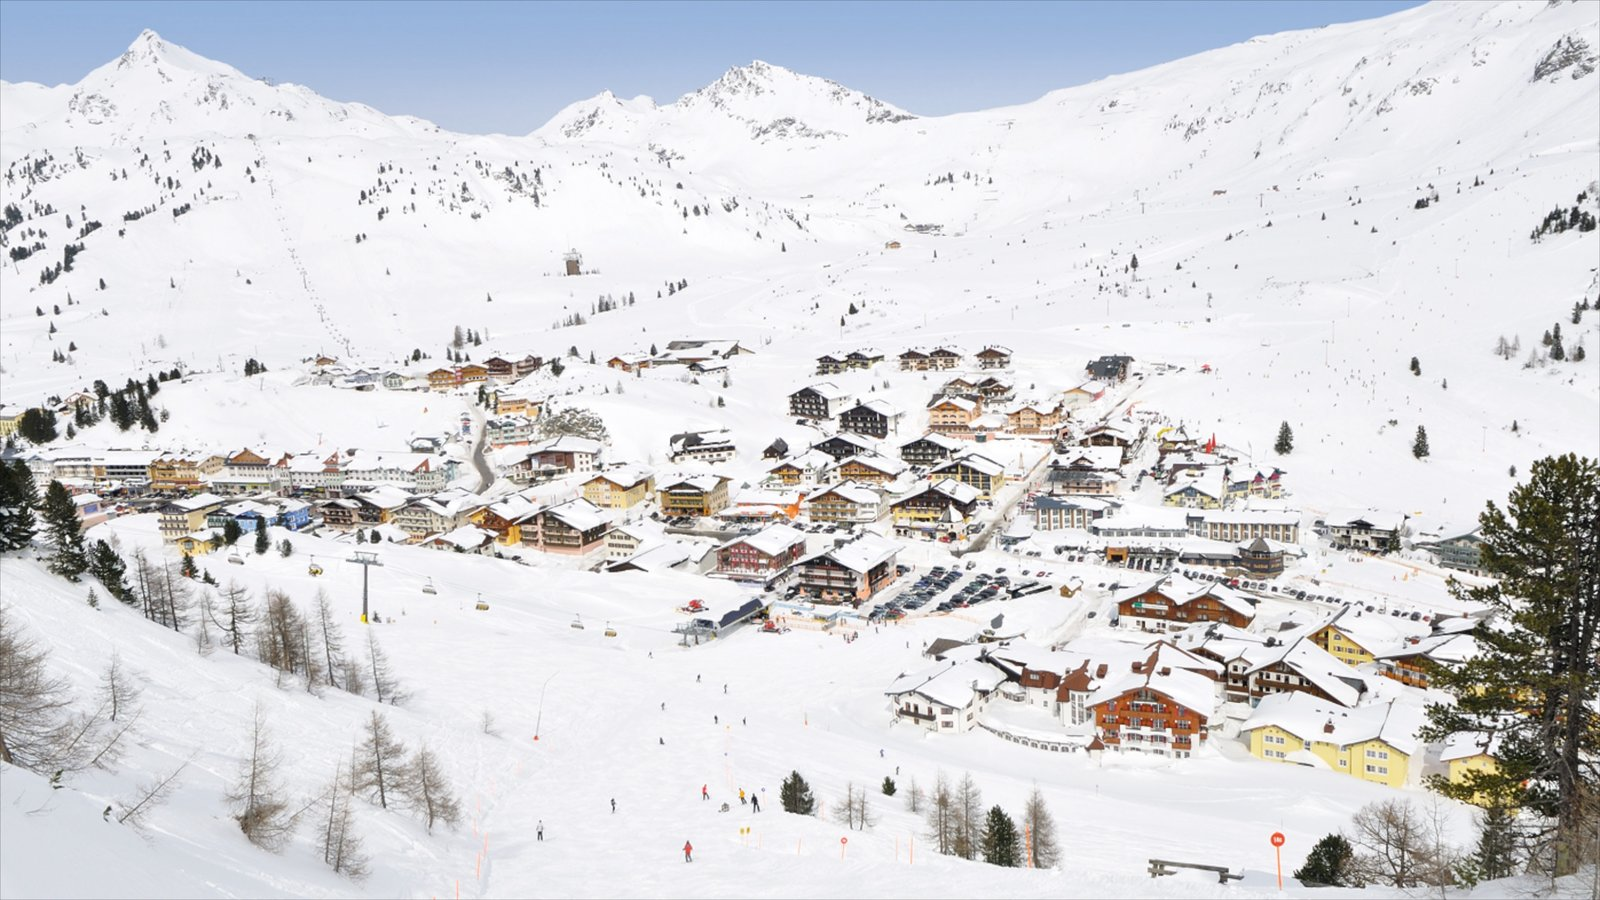 Obertauern featuring a small town or village, mountains and snow